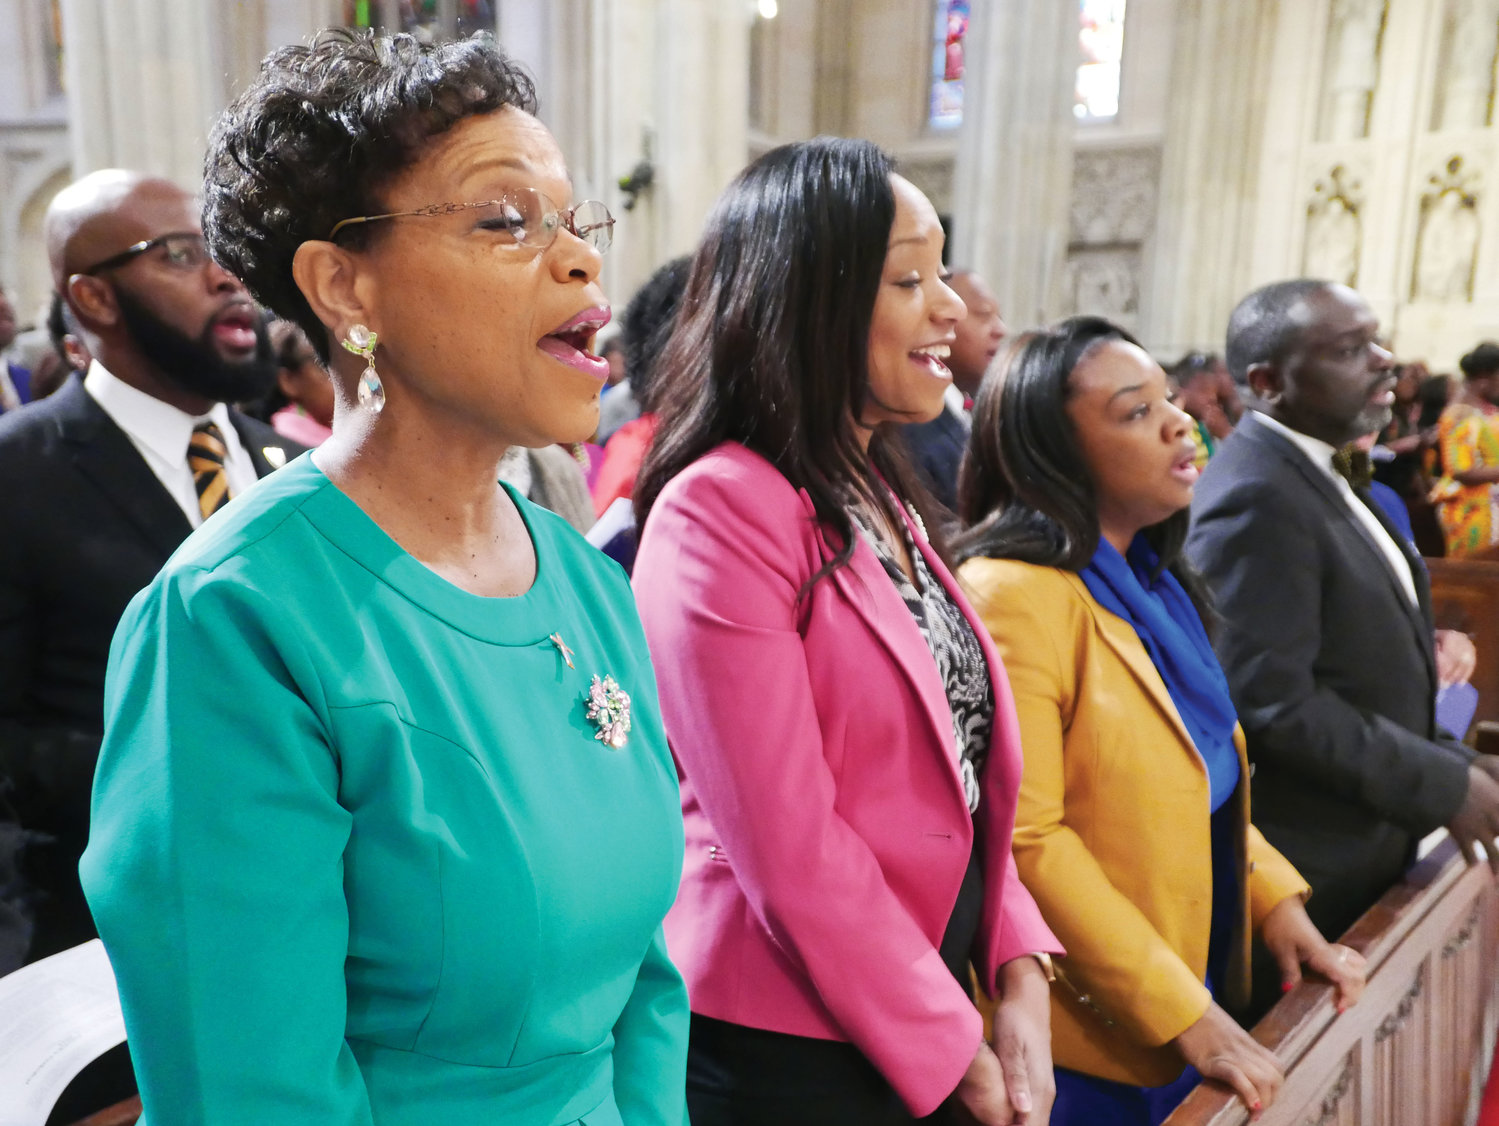 This year's Black History Month Mass took place at St. Patrick's Cathedral Feb. 3.